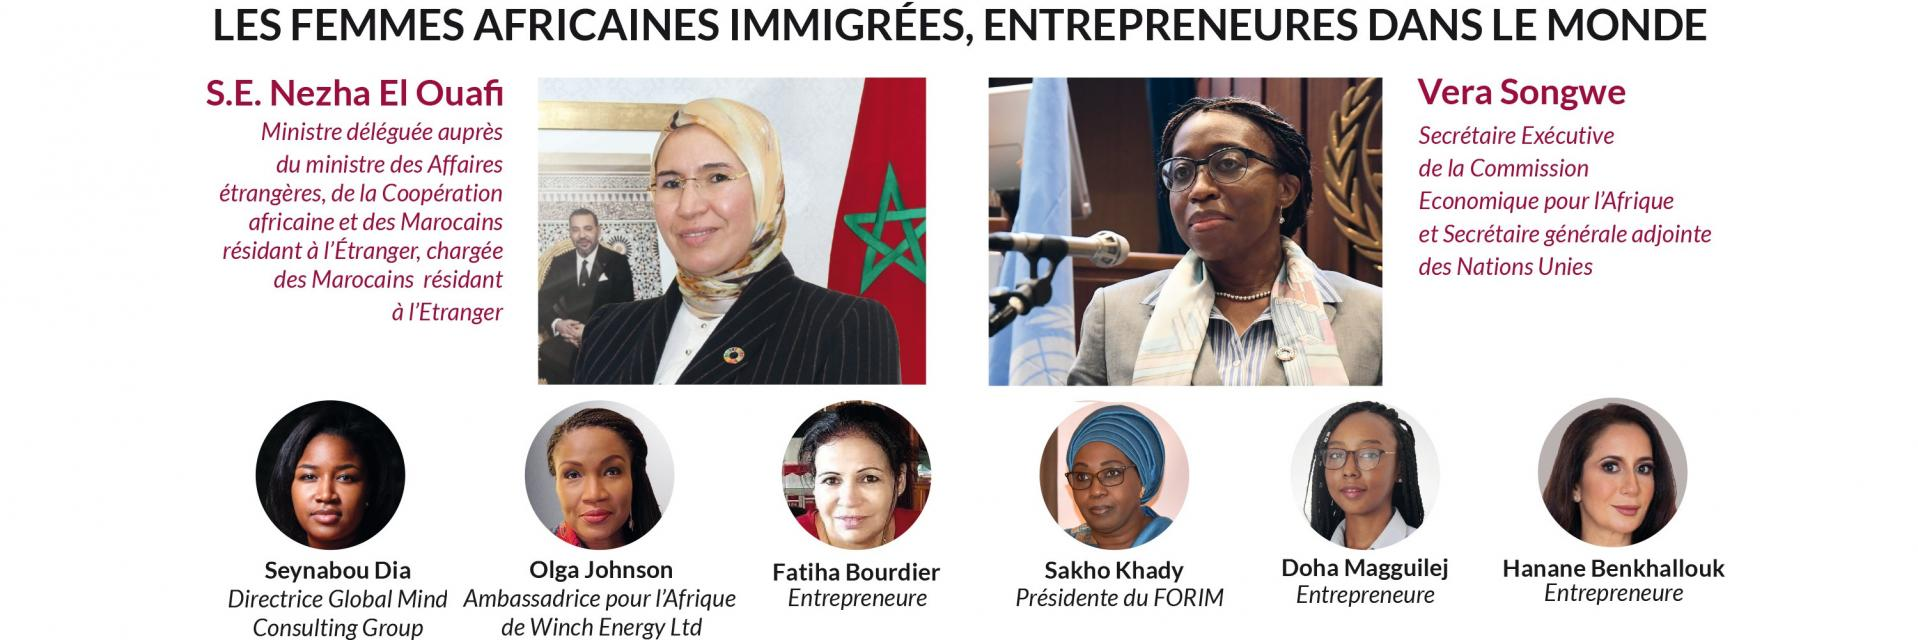 AfCFTA full of opportunities for women entrepreneurs in Morocco and Africa